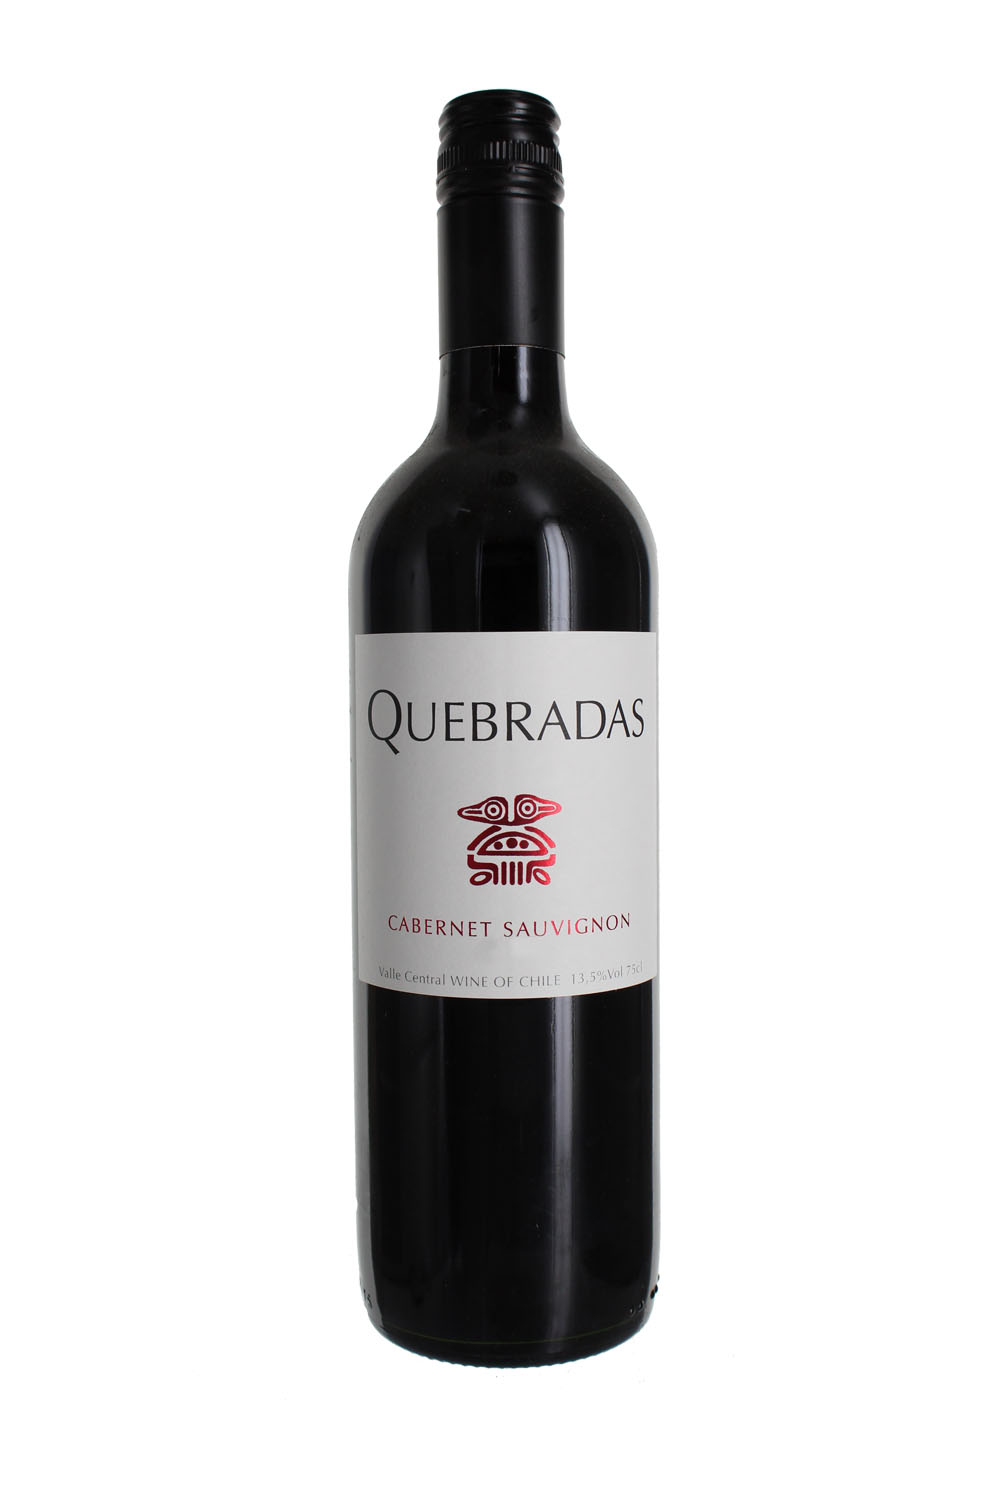 2017 Quebradas Merlot, Central Valley, Chile (Case)